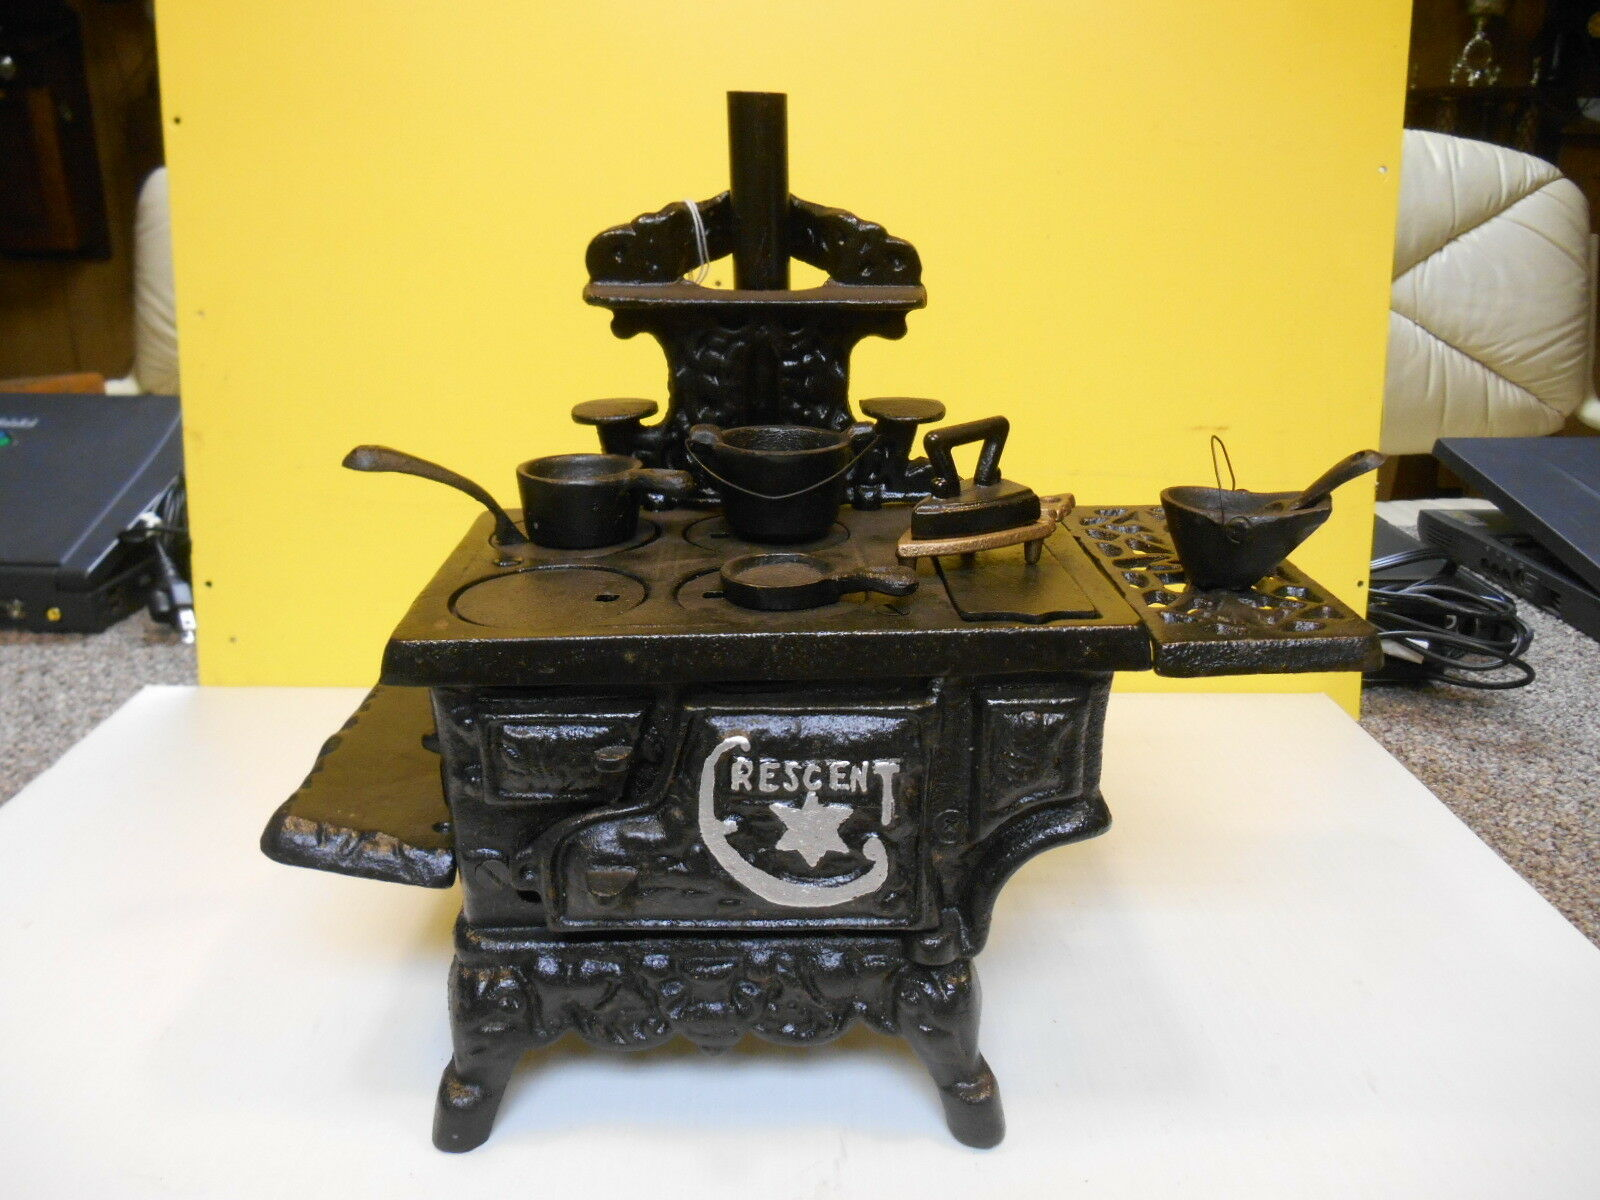 VINTAGE CRESCENT CAST IRON TOY STOVE WITH 8 ACCESSORIES  WEIGHS 9 1 /2 LBS.